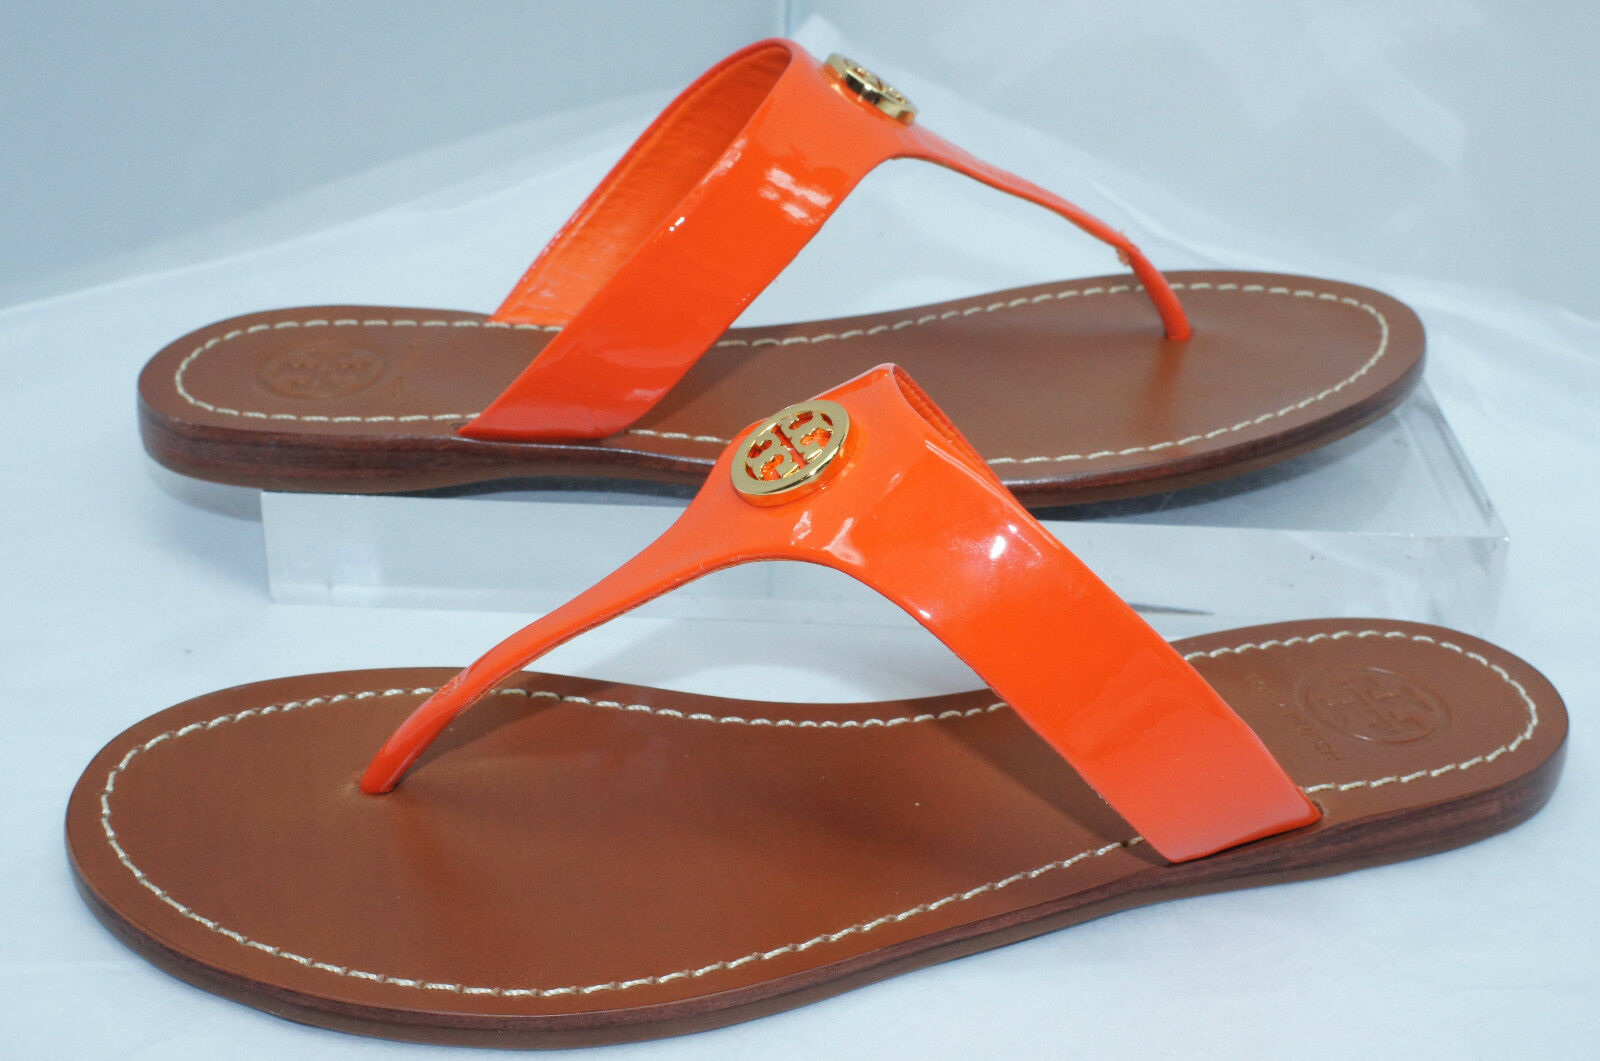 New Tory Burch Cameron Sandals Sandals Sandals Thongs chaussures Taille 6.5 Orange 635ac1